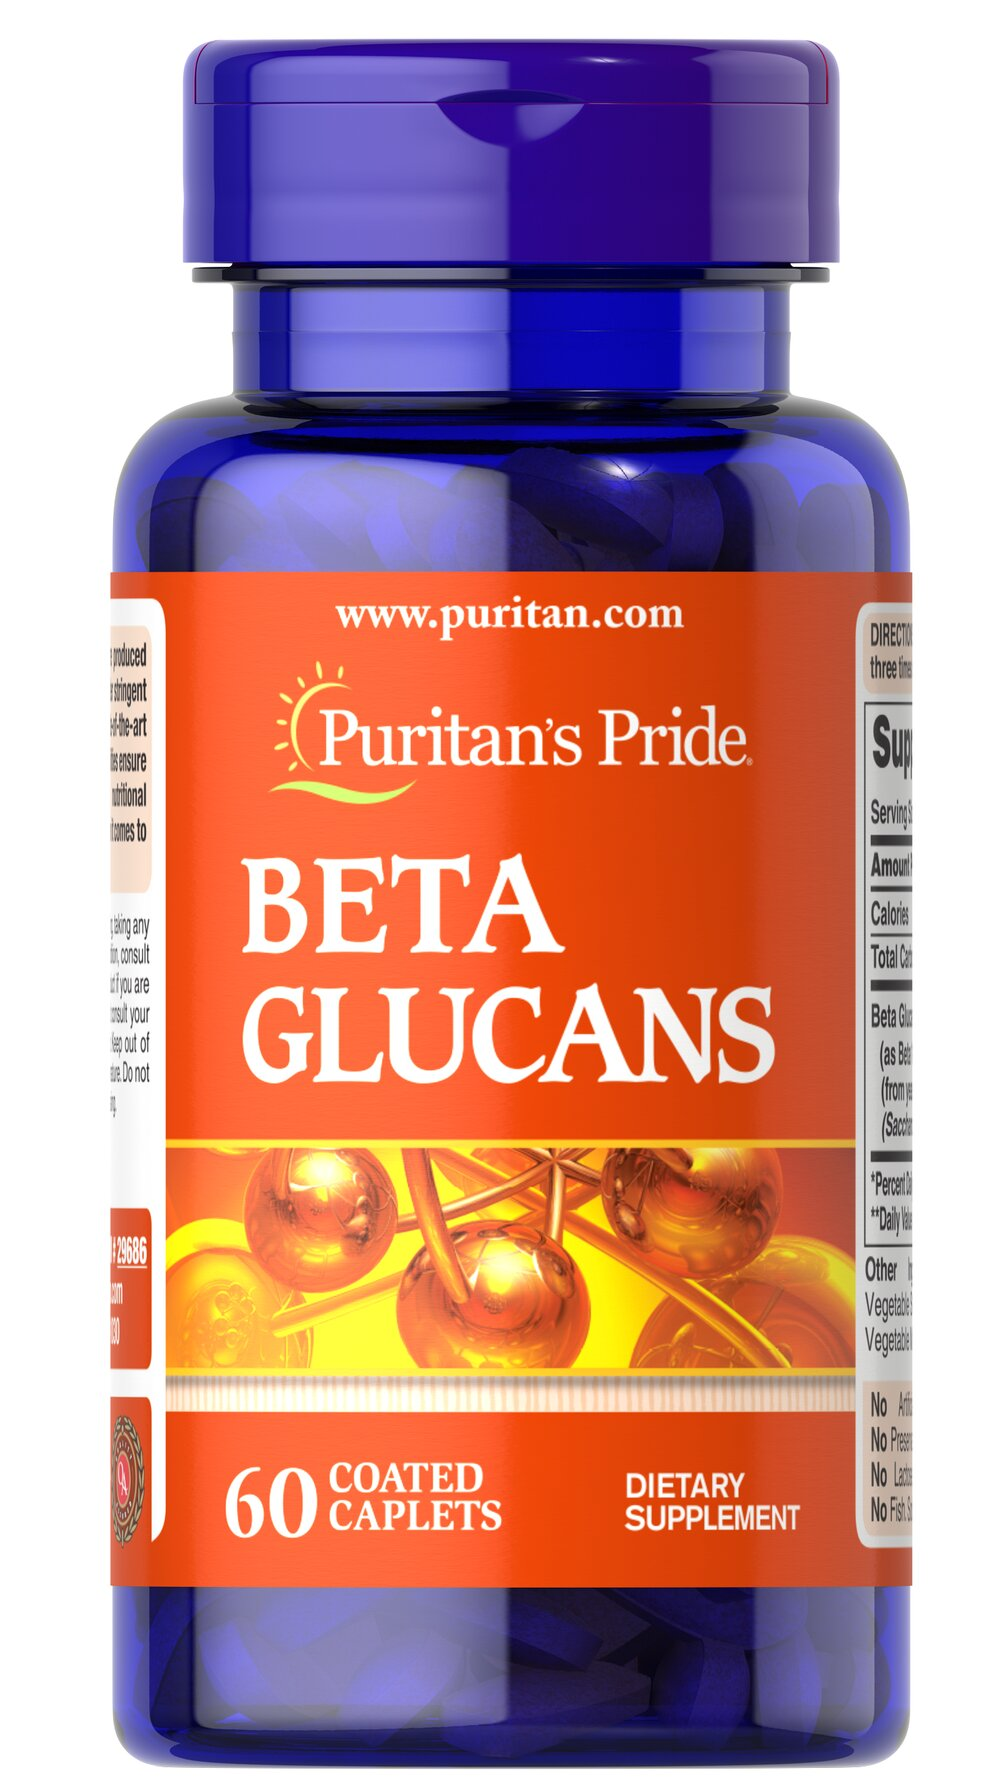 Beta Glucans 200 mg <p>Beta 1,3 Glucans are the major structural components of yeast</p> <p>Our Beta 1,3 Glucans are derived from the cell walls of yeast</p> <p>Contributes to healthy immune function**</p> <p>Contains 200 mg of Beta 1,3 Glucans per tablet</p> <p>These tablets are a great choice for vegetarians</p> 60 Tablets 200 mg $20.59